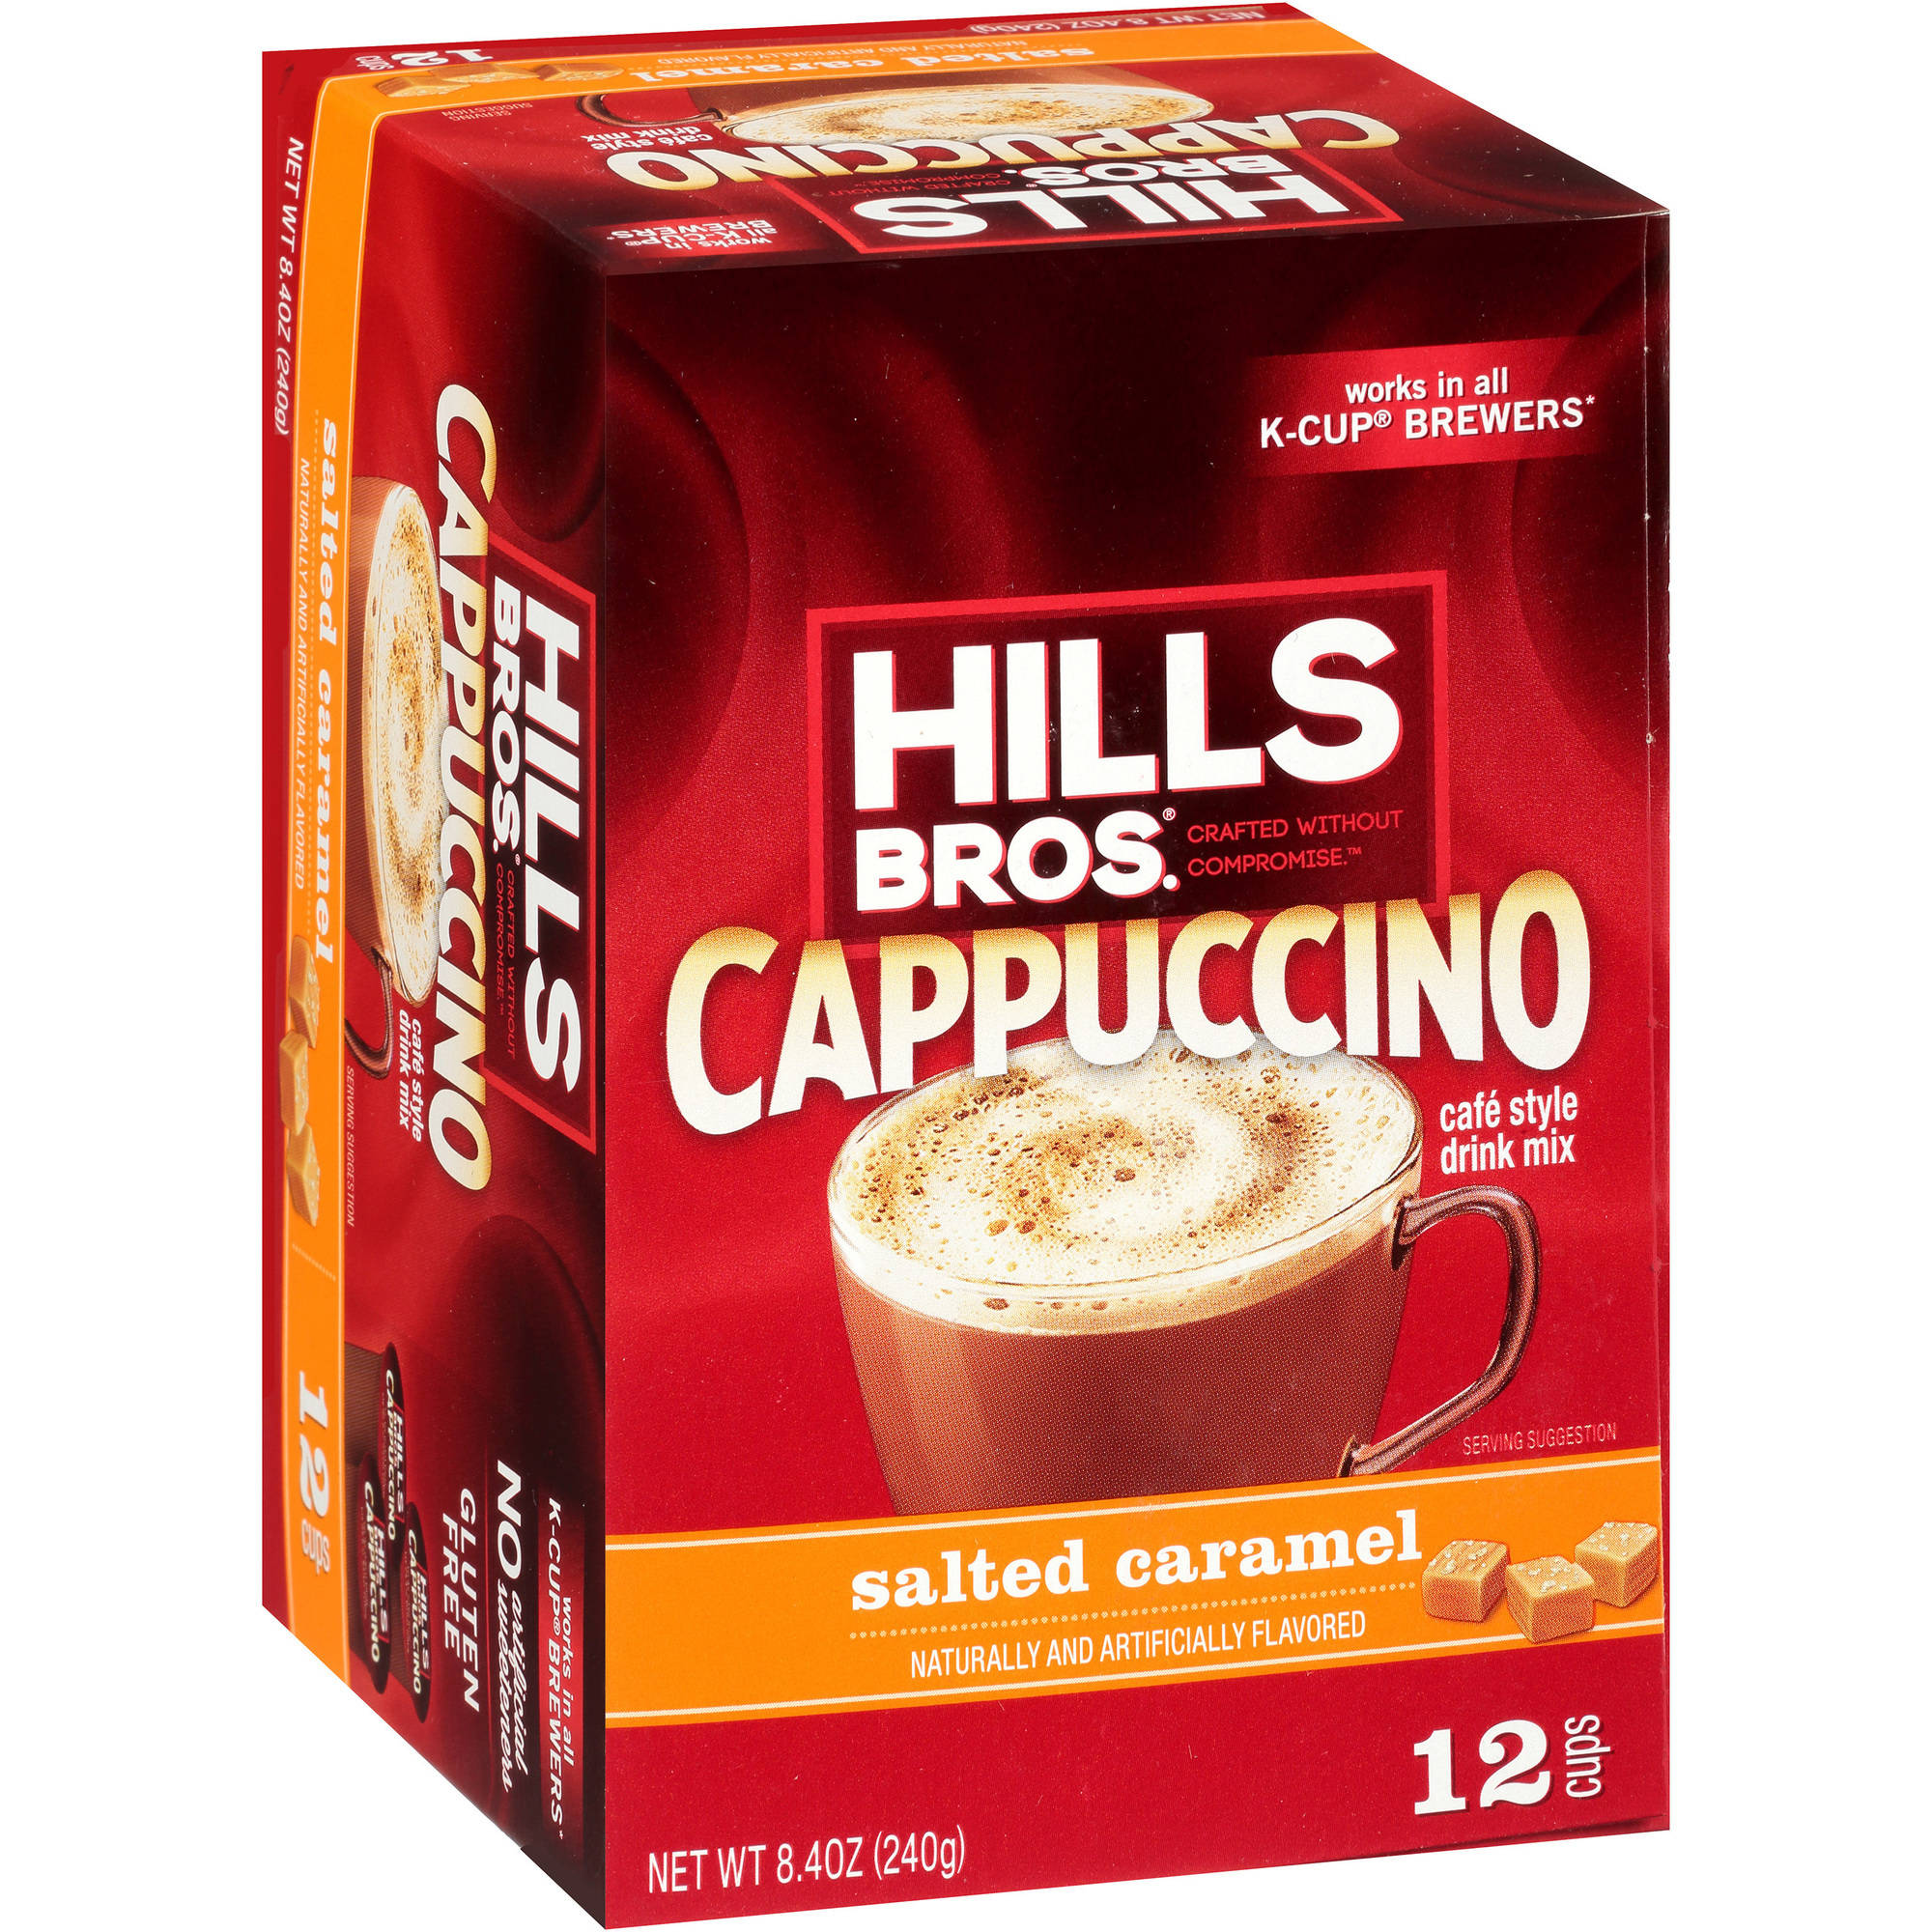 Hills Bros. French Salted Caramel Cappuccino Single Serve Cups, 12 count, 8.4 oz